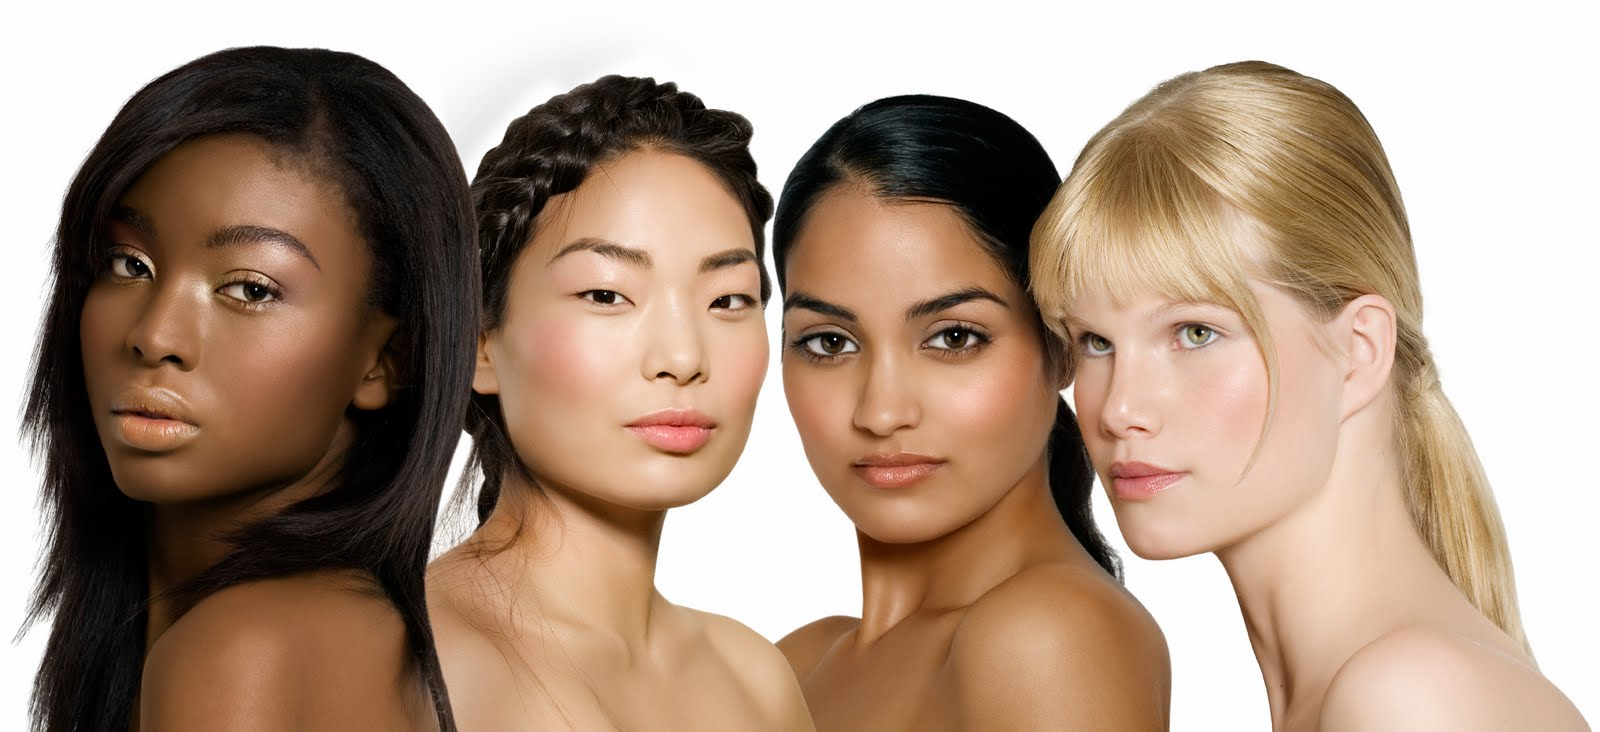 Does Skin Type Matter? | Privy Skin Care